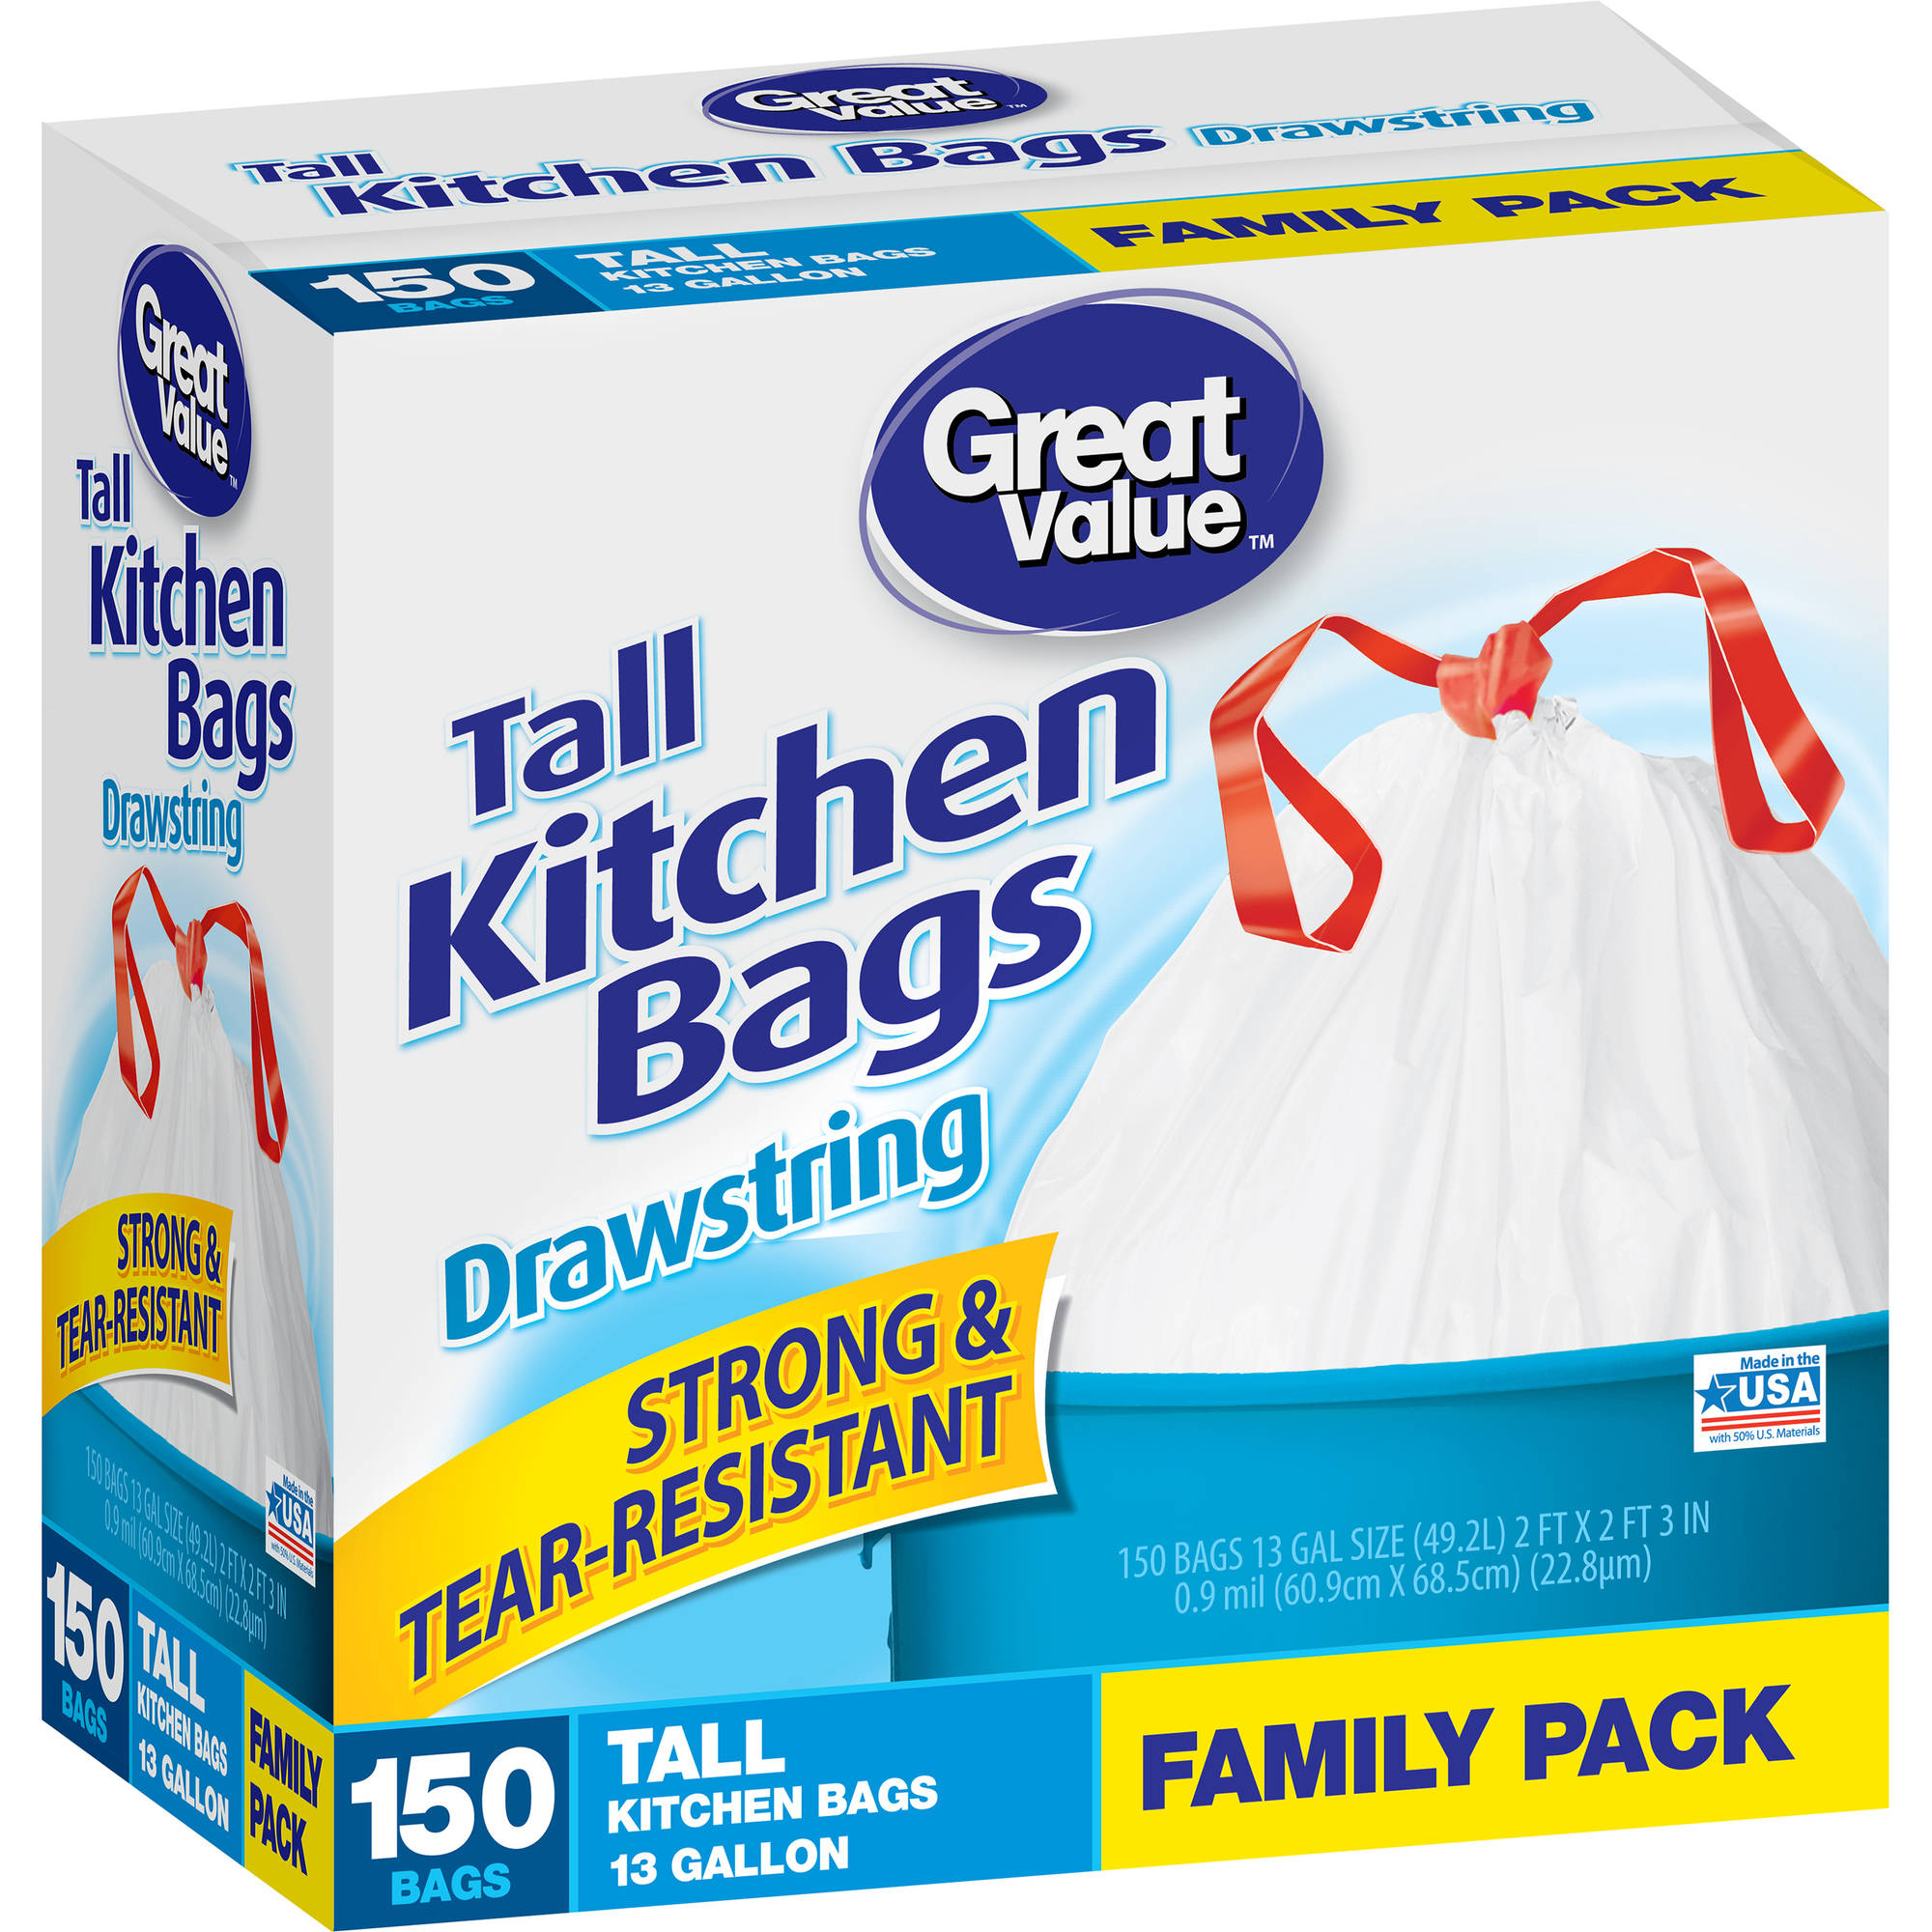 Great Value Drawstring Tall Kitchen Bags, 13 gallon, 150 count